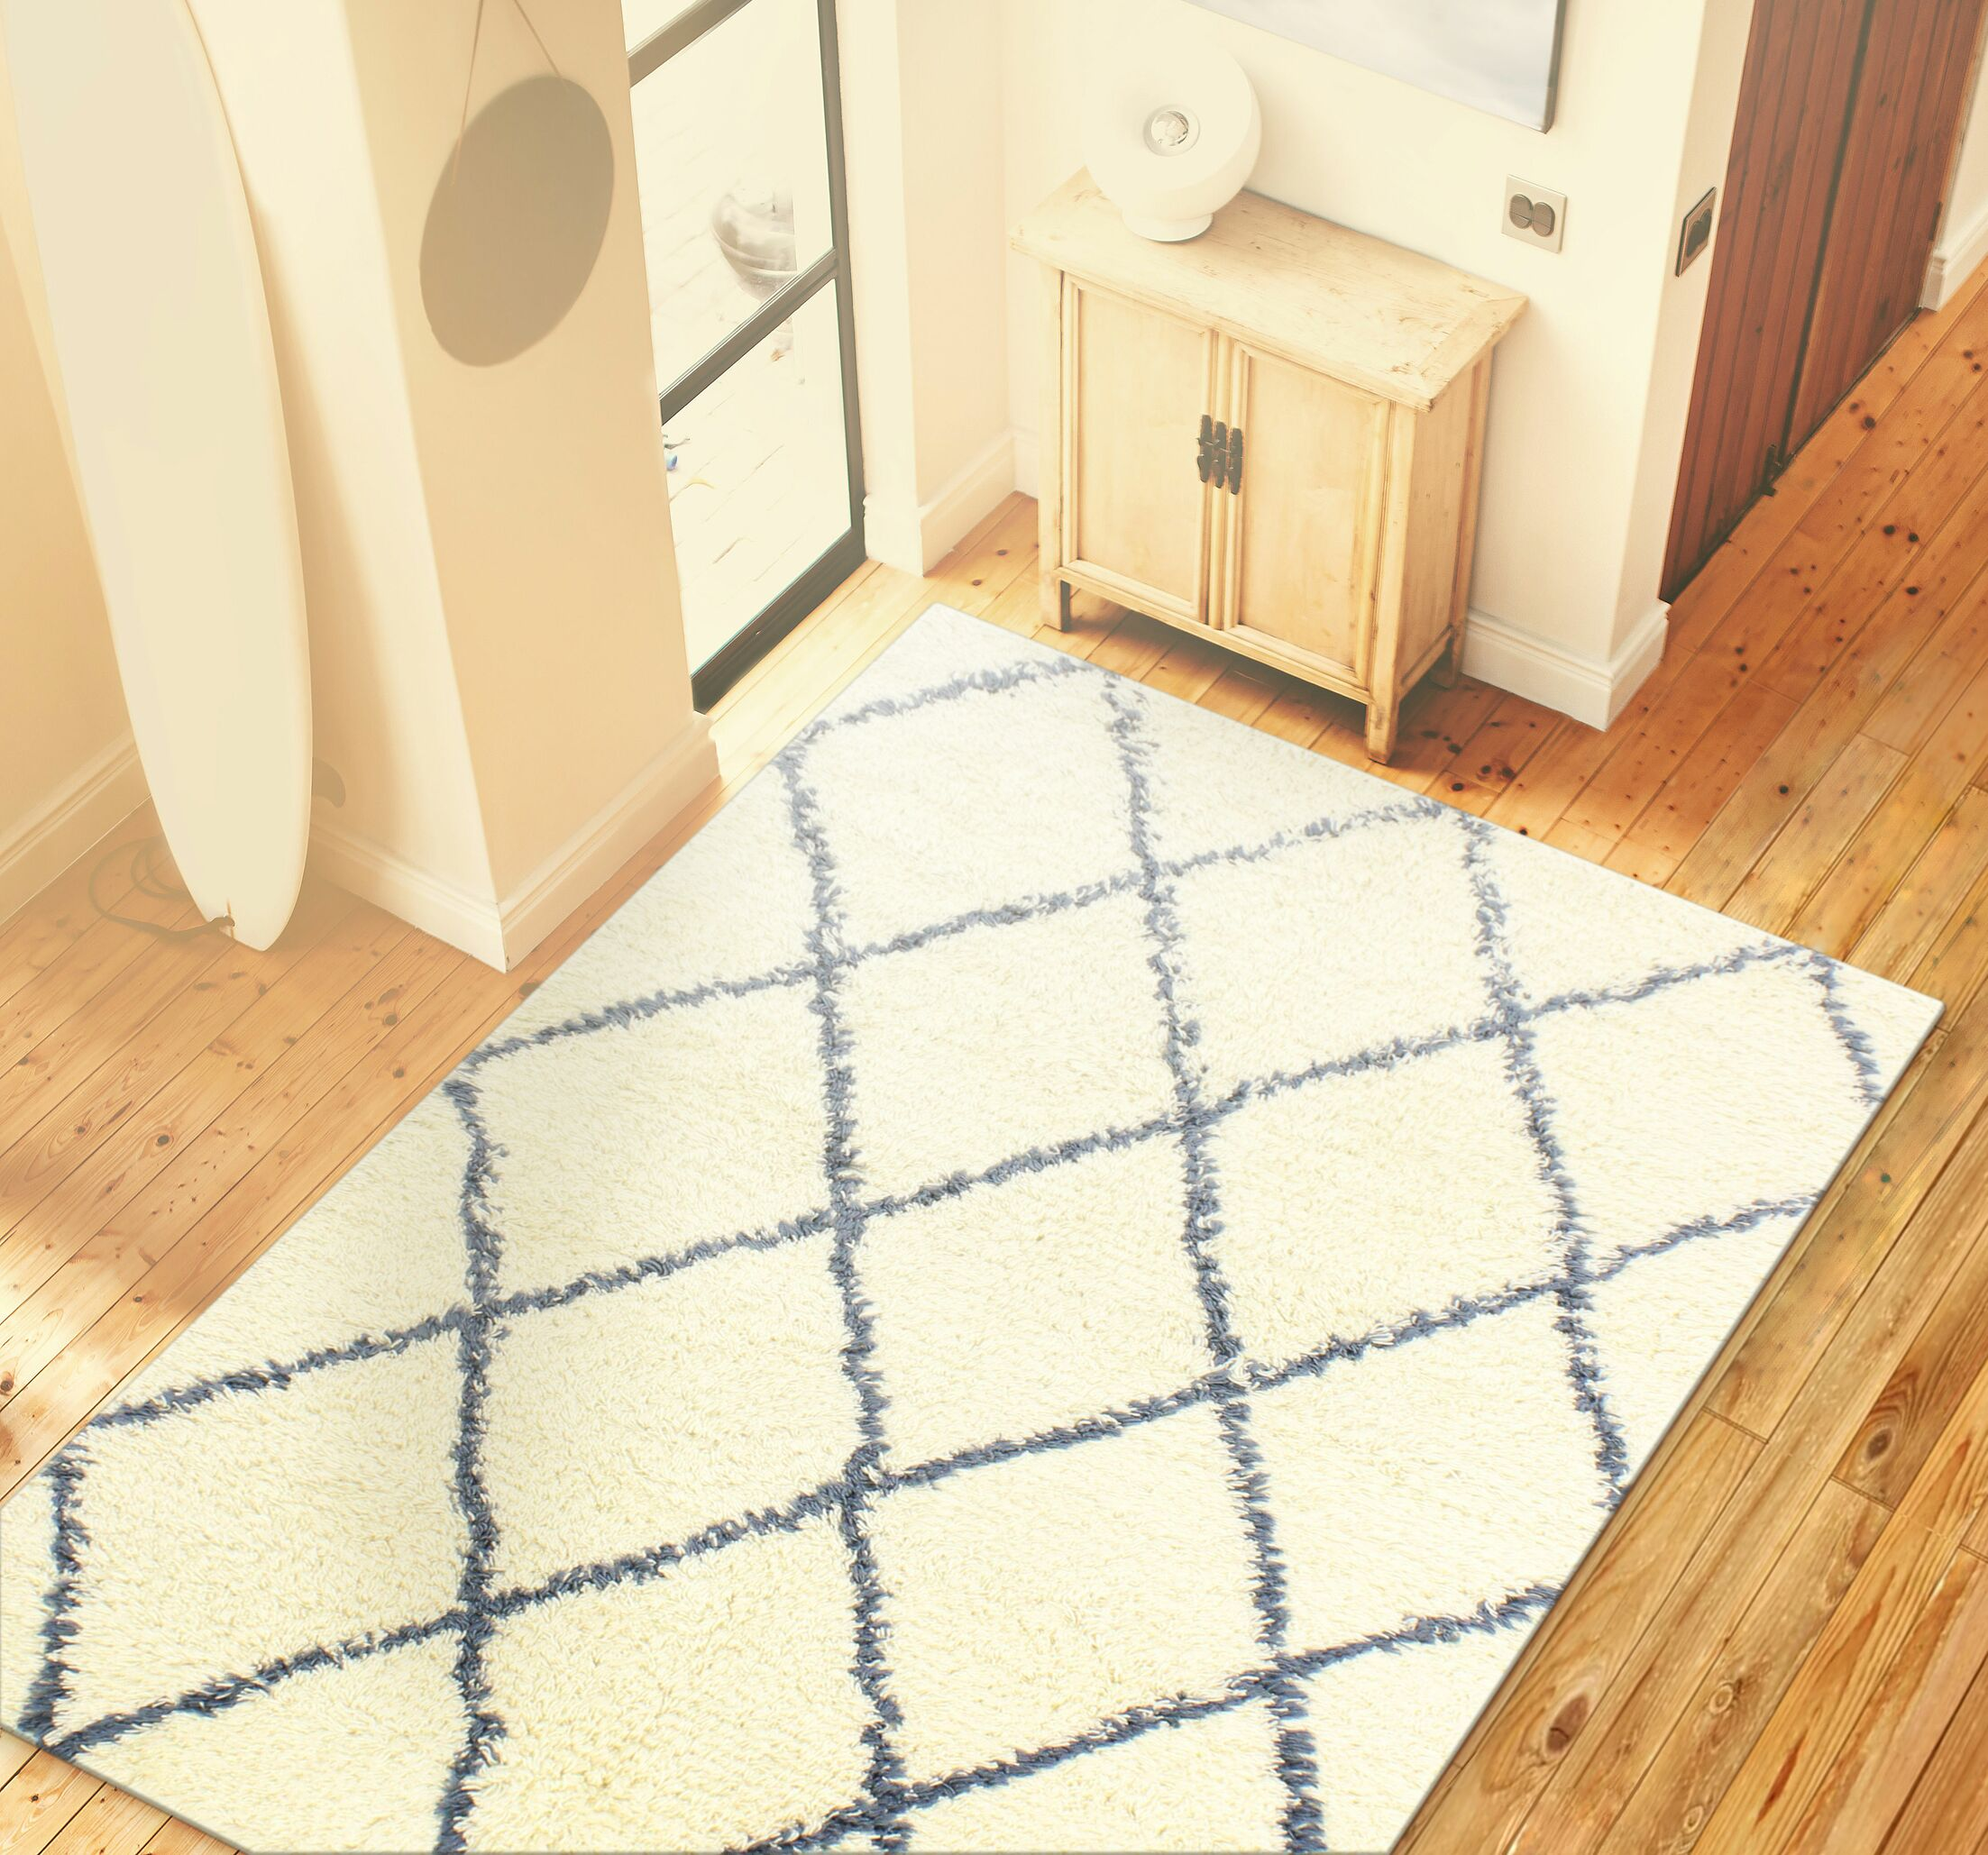 Lavedan Wool Hand-Knotted Ivory/Blue Area Rug Rug Size: Rectangle 3'6